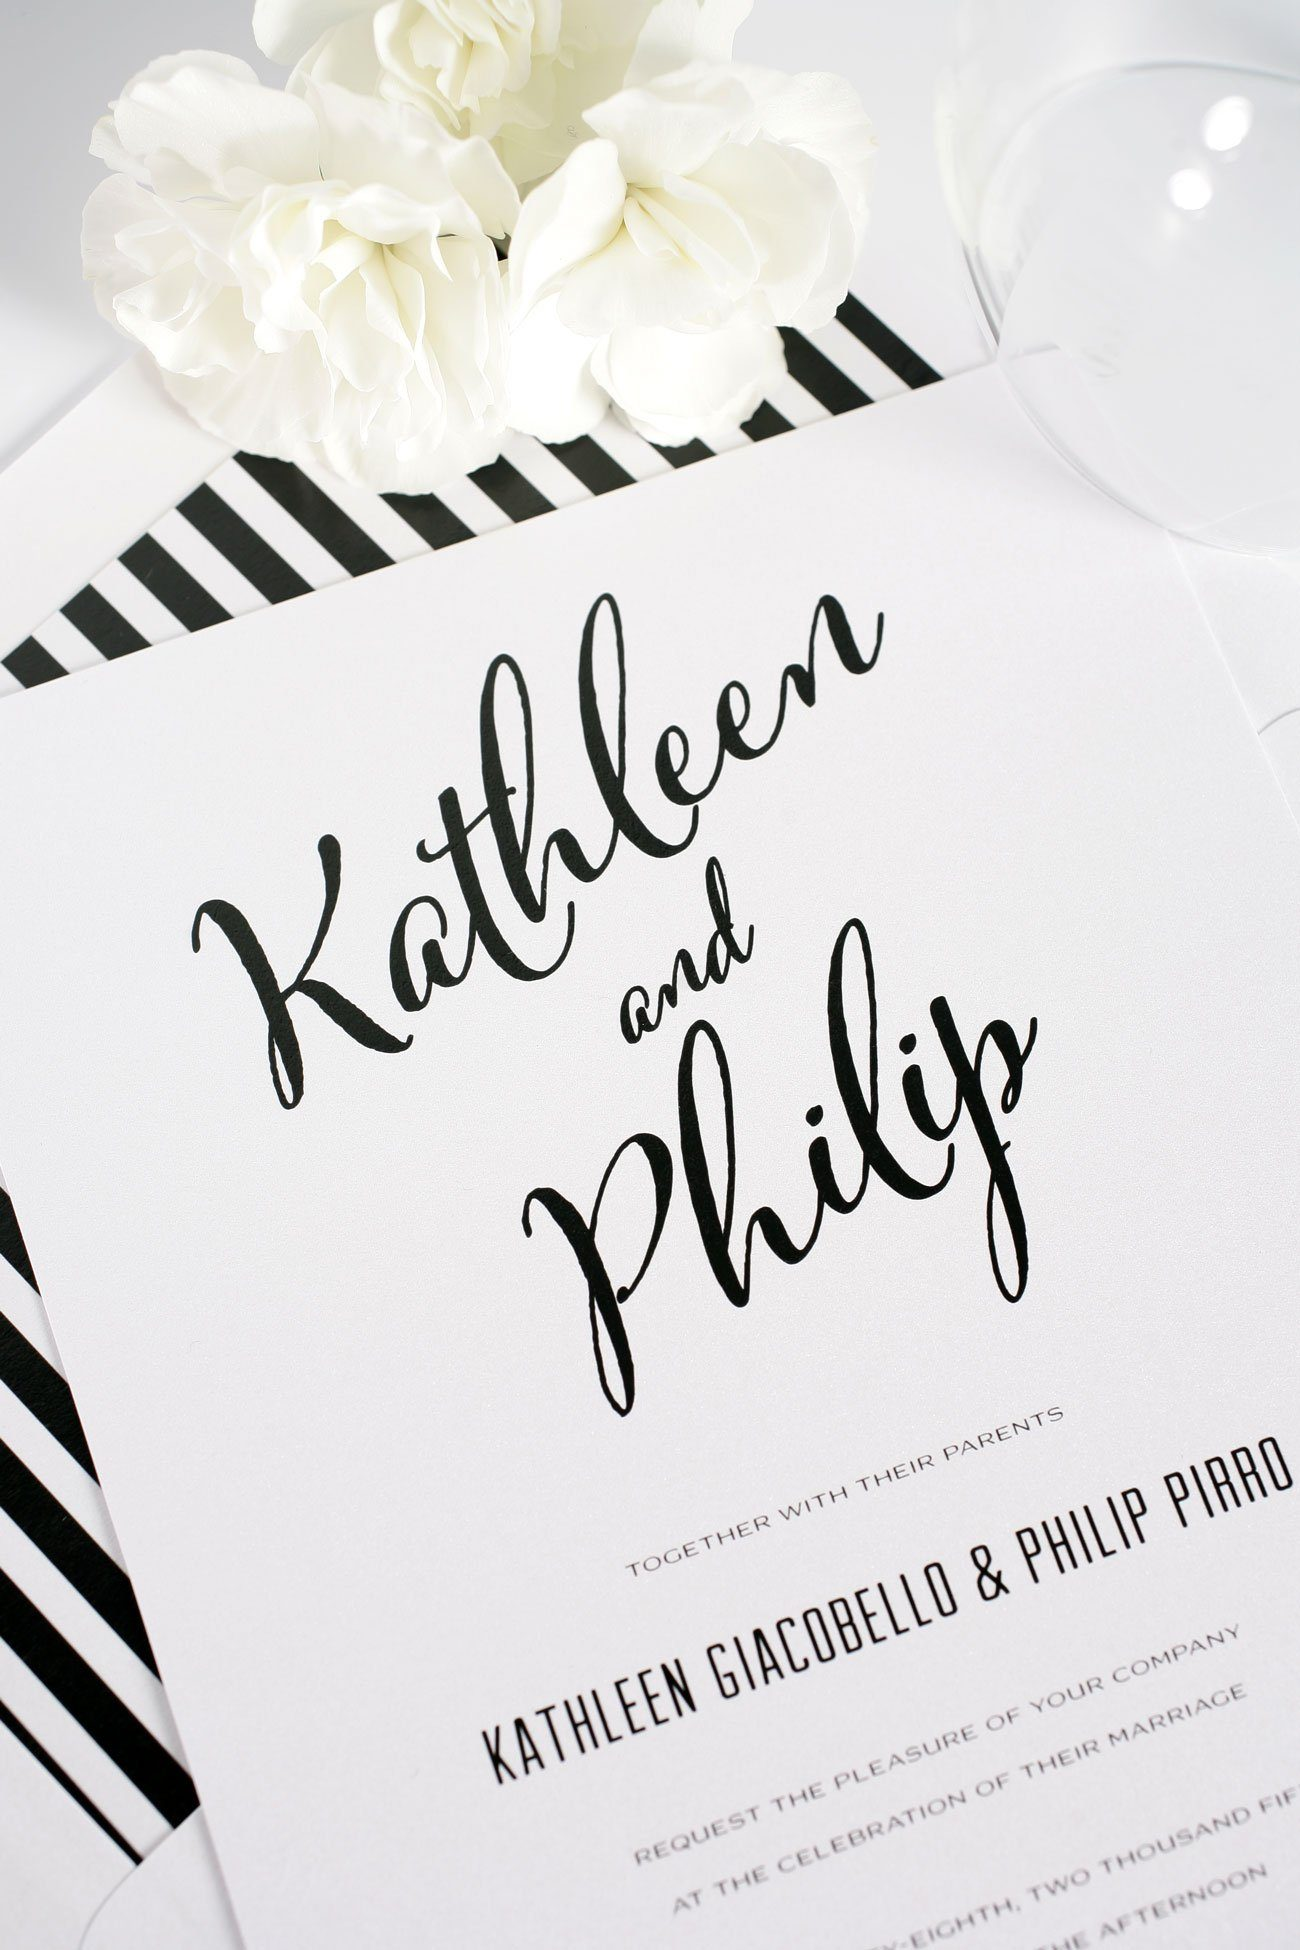 Black and white striped wedding invitations